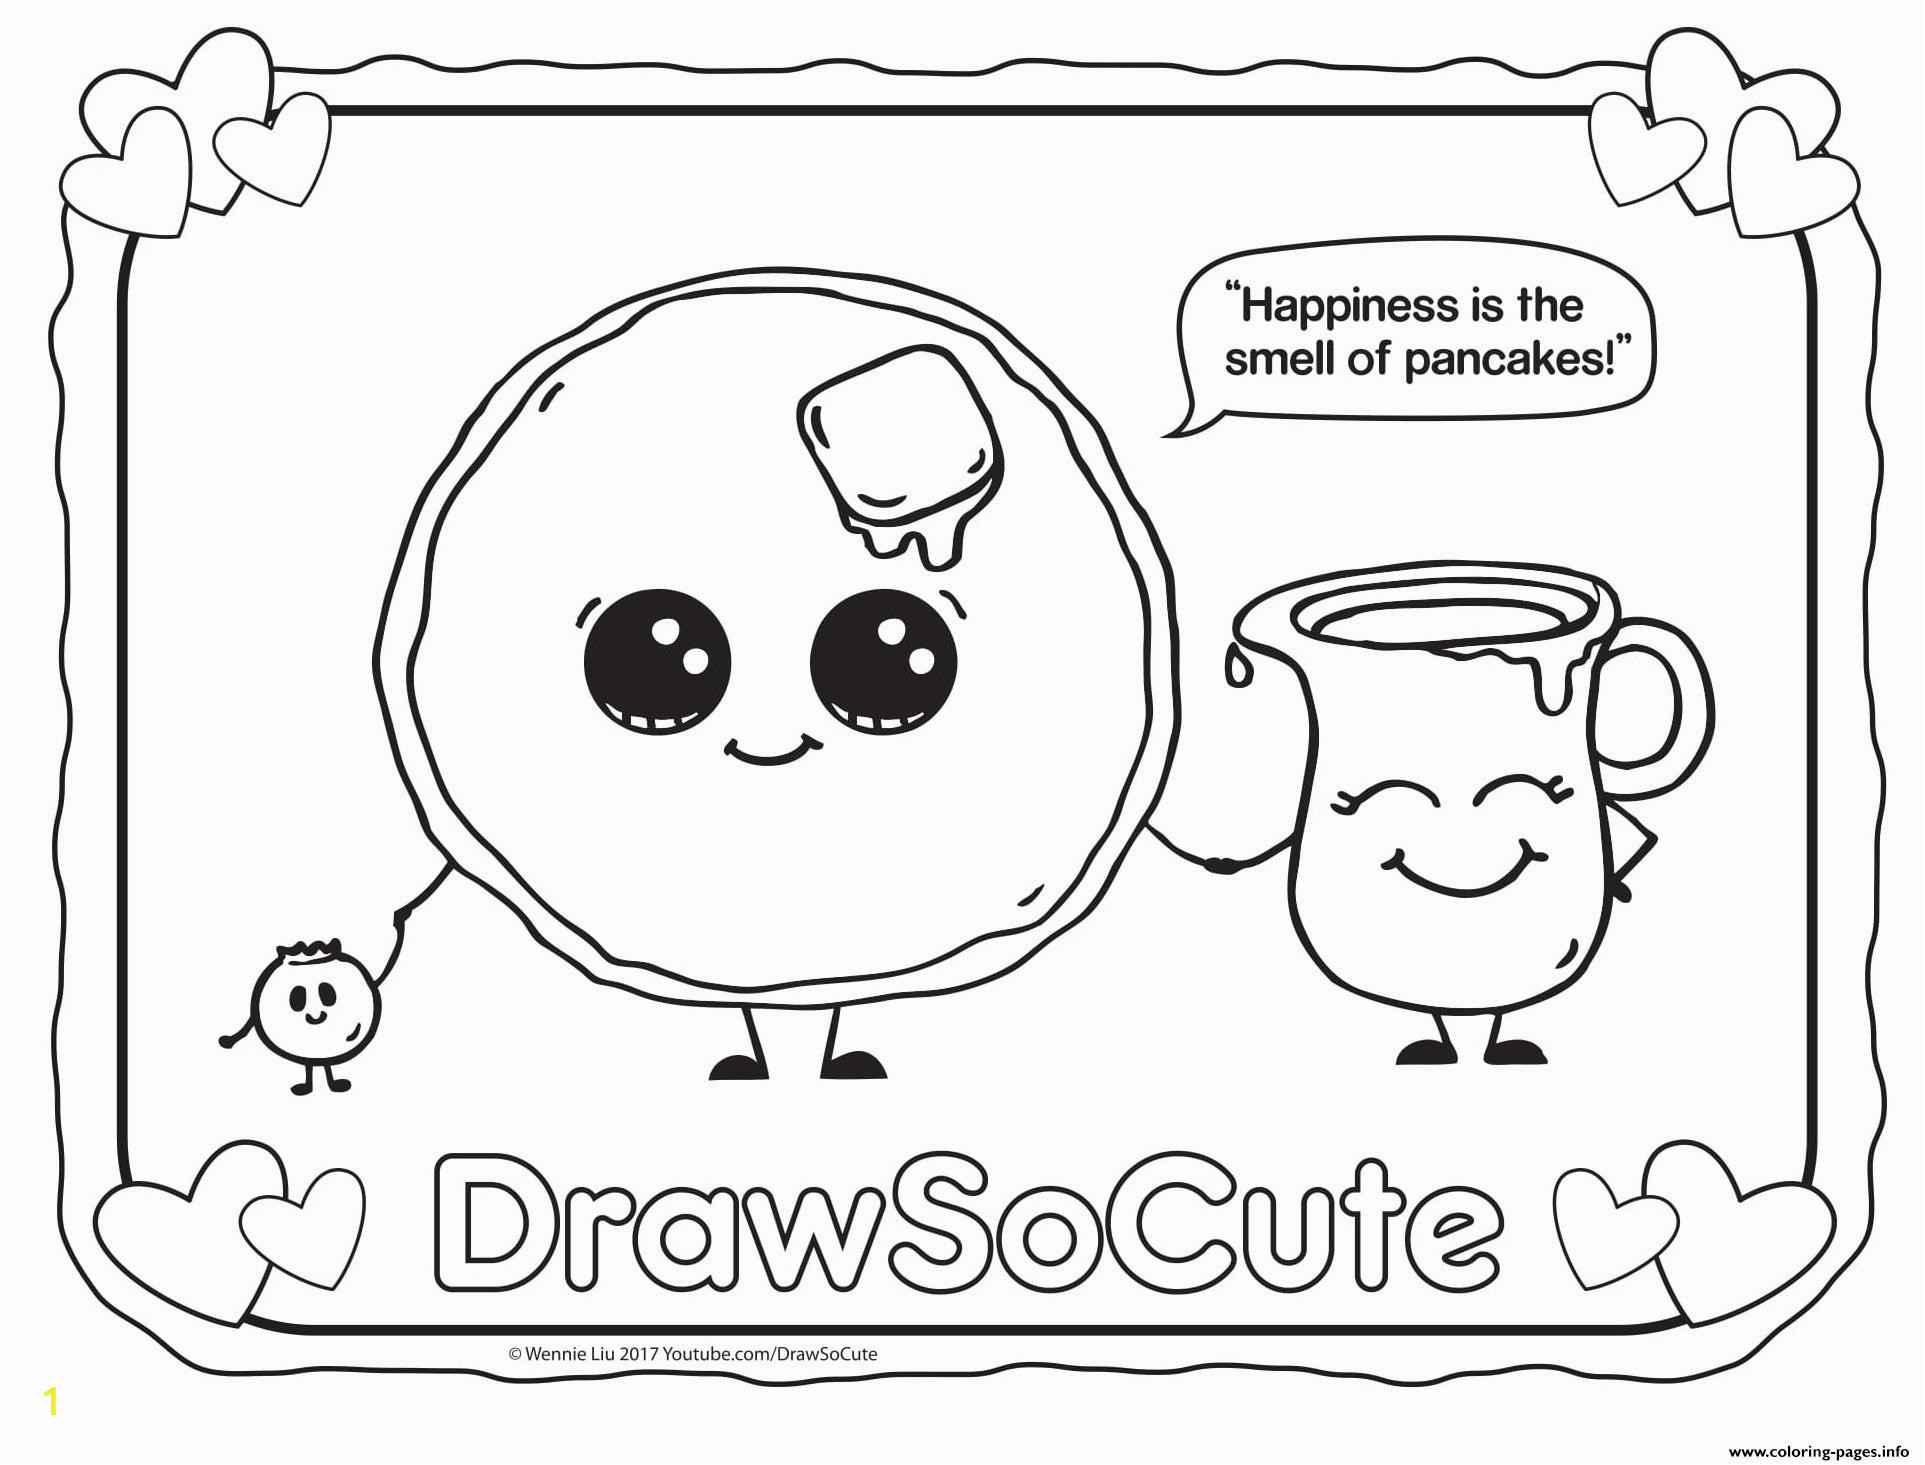 pancake draw so cute coloring pages printable animal l adorable fish sheets shark zoo pictures to color sheep page horse sea animals colouring of